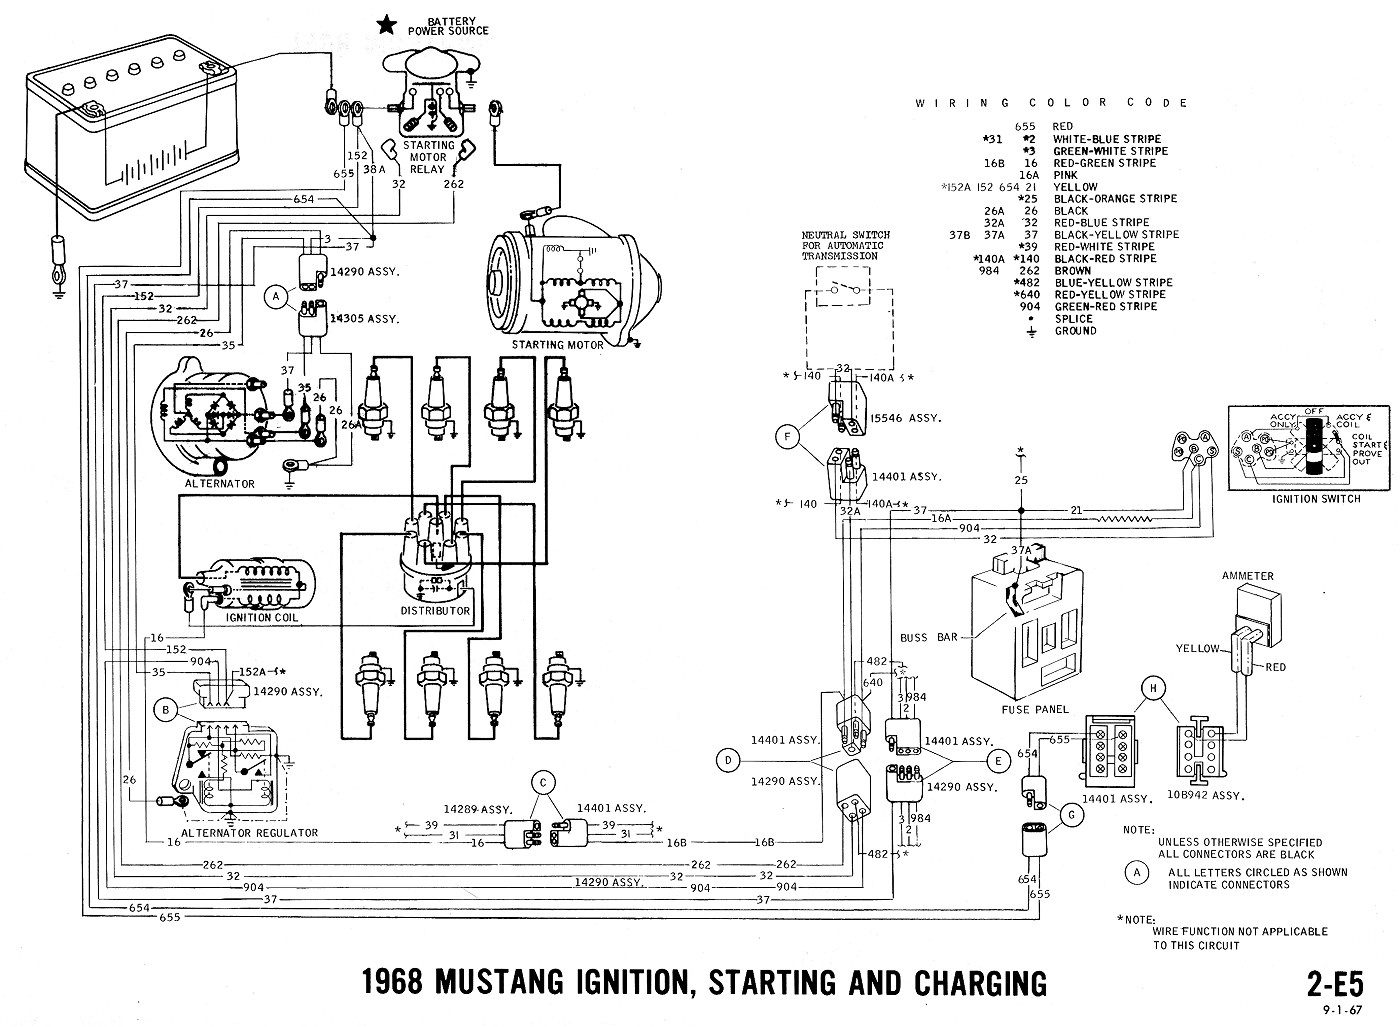 Wiring Diagram For 1991 Chevrolet Corvette Data Diagrams 1969 Starter 1968 Mustang Evolving Software Radio 1979